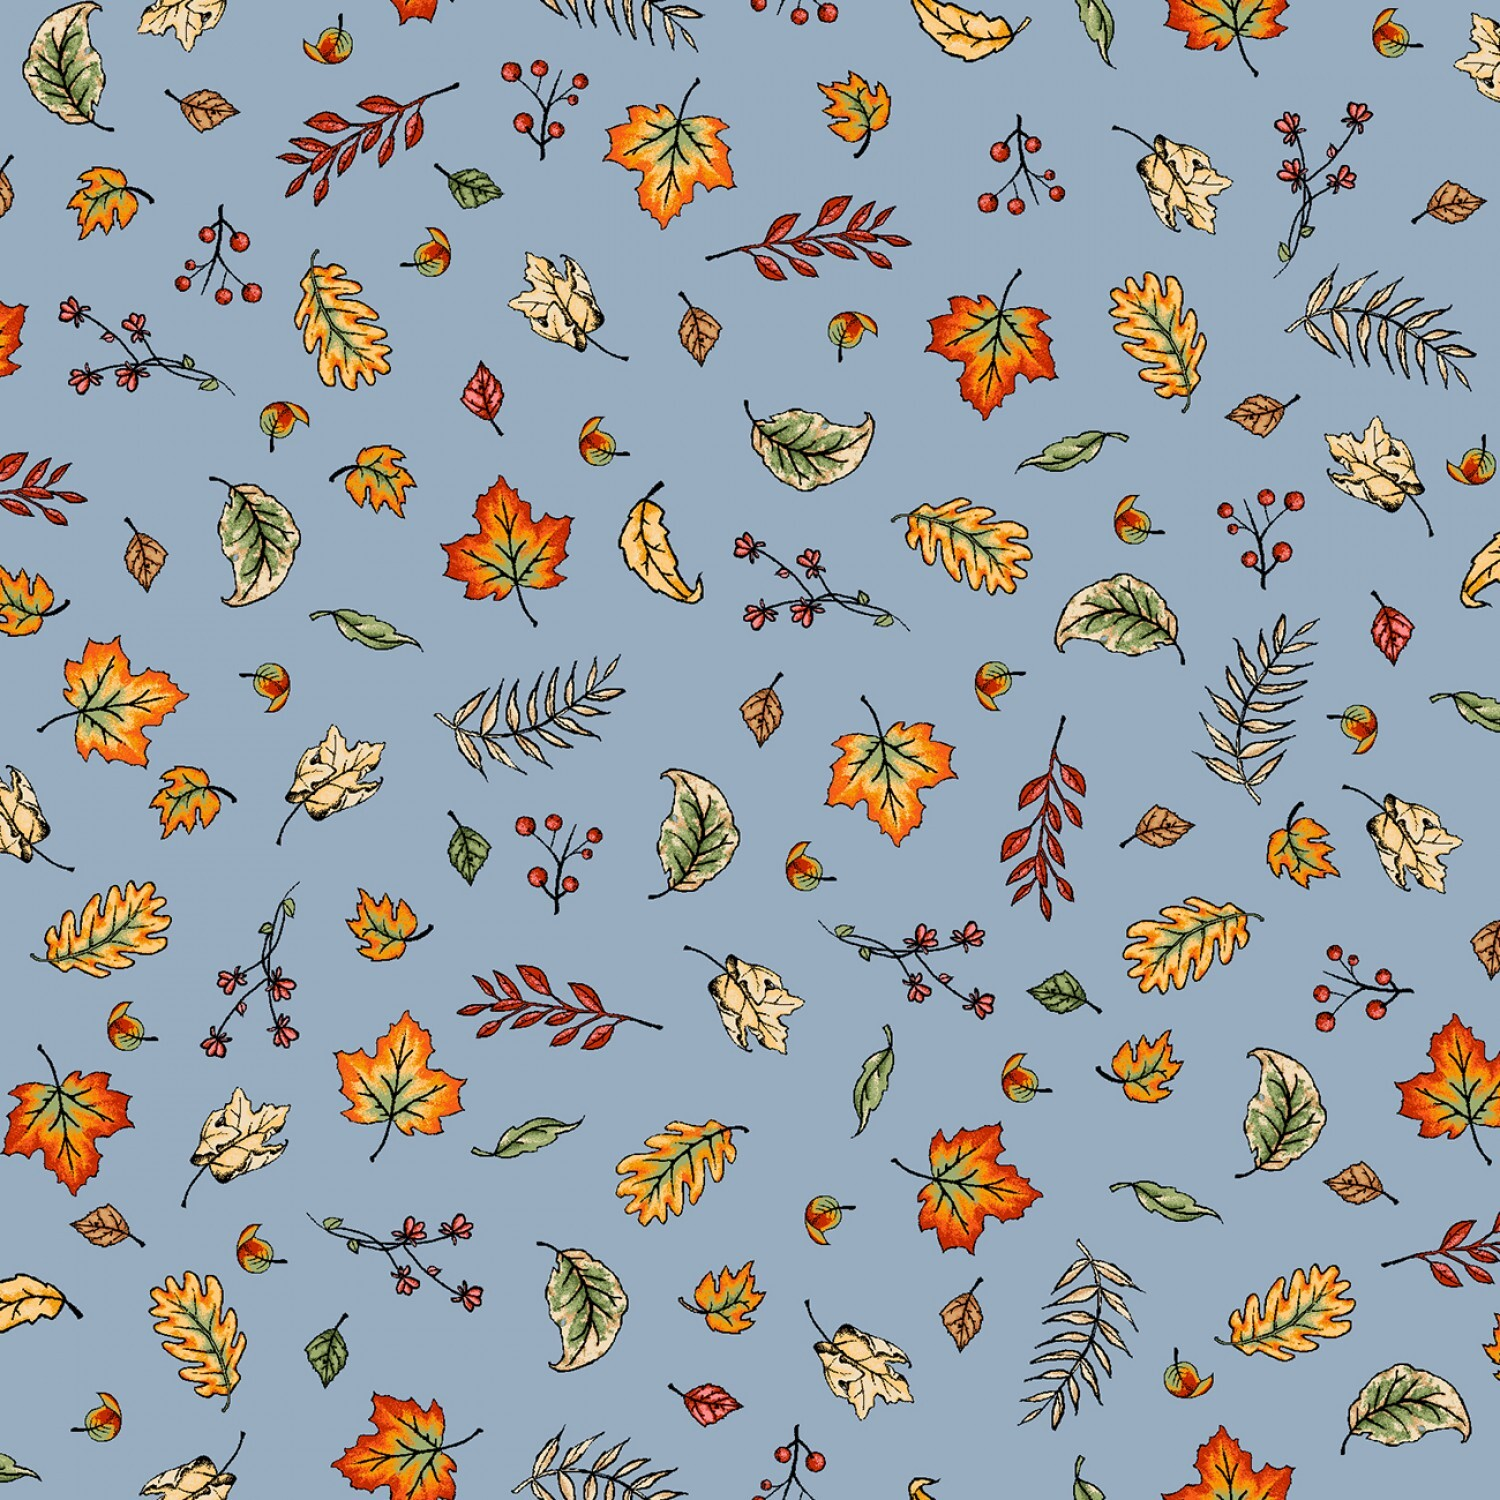 Sweater Weather - Blue Blowing Leaves - 1/2m cut 57980